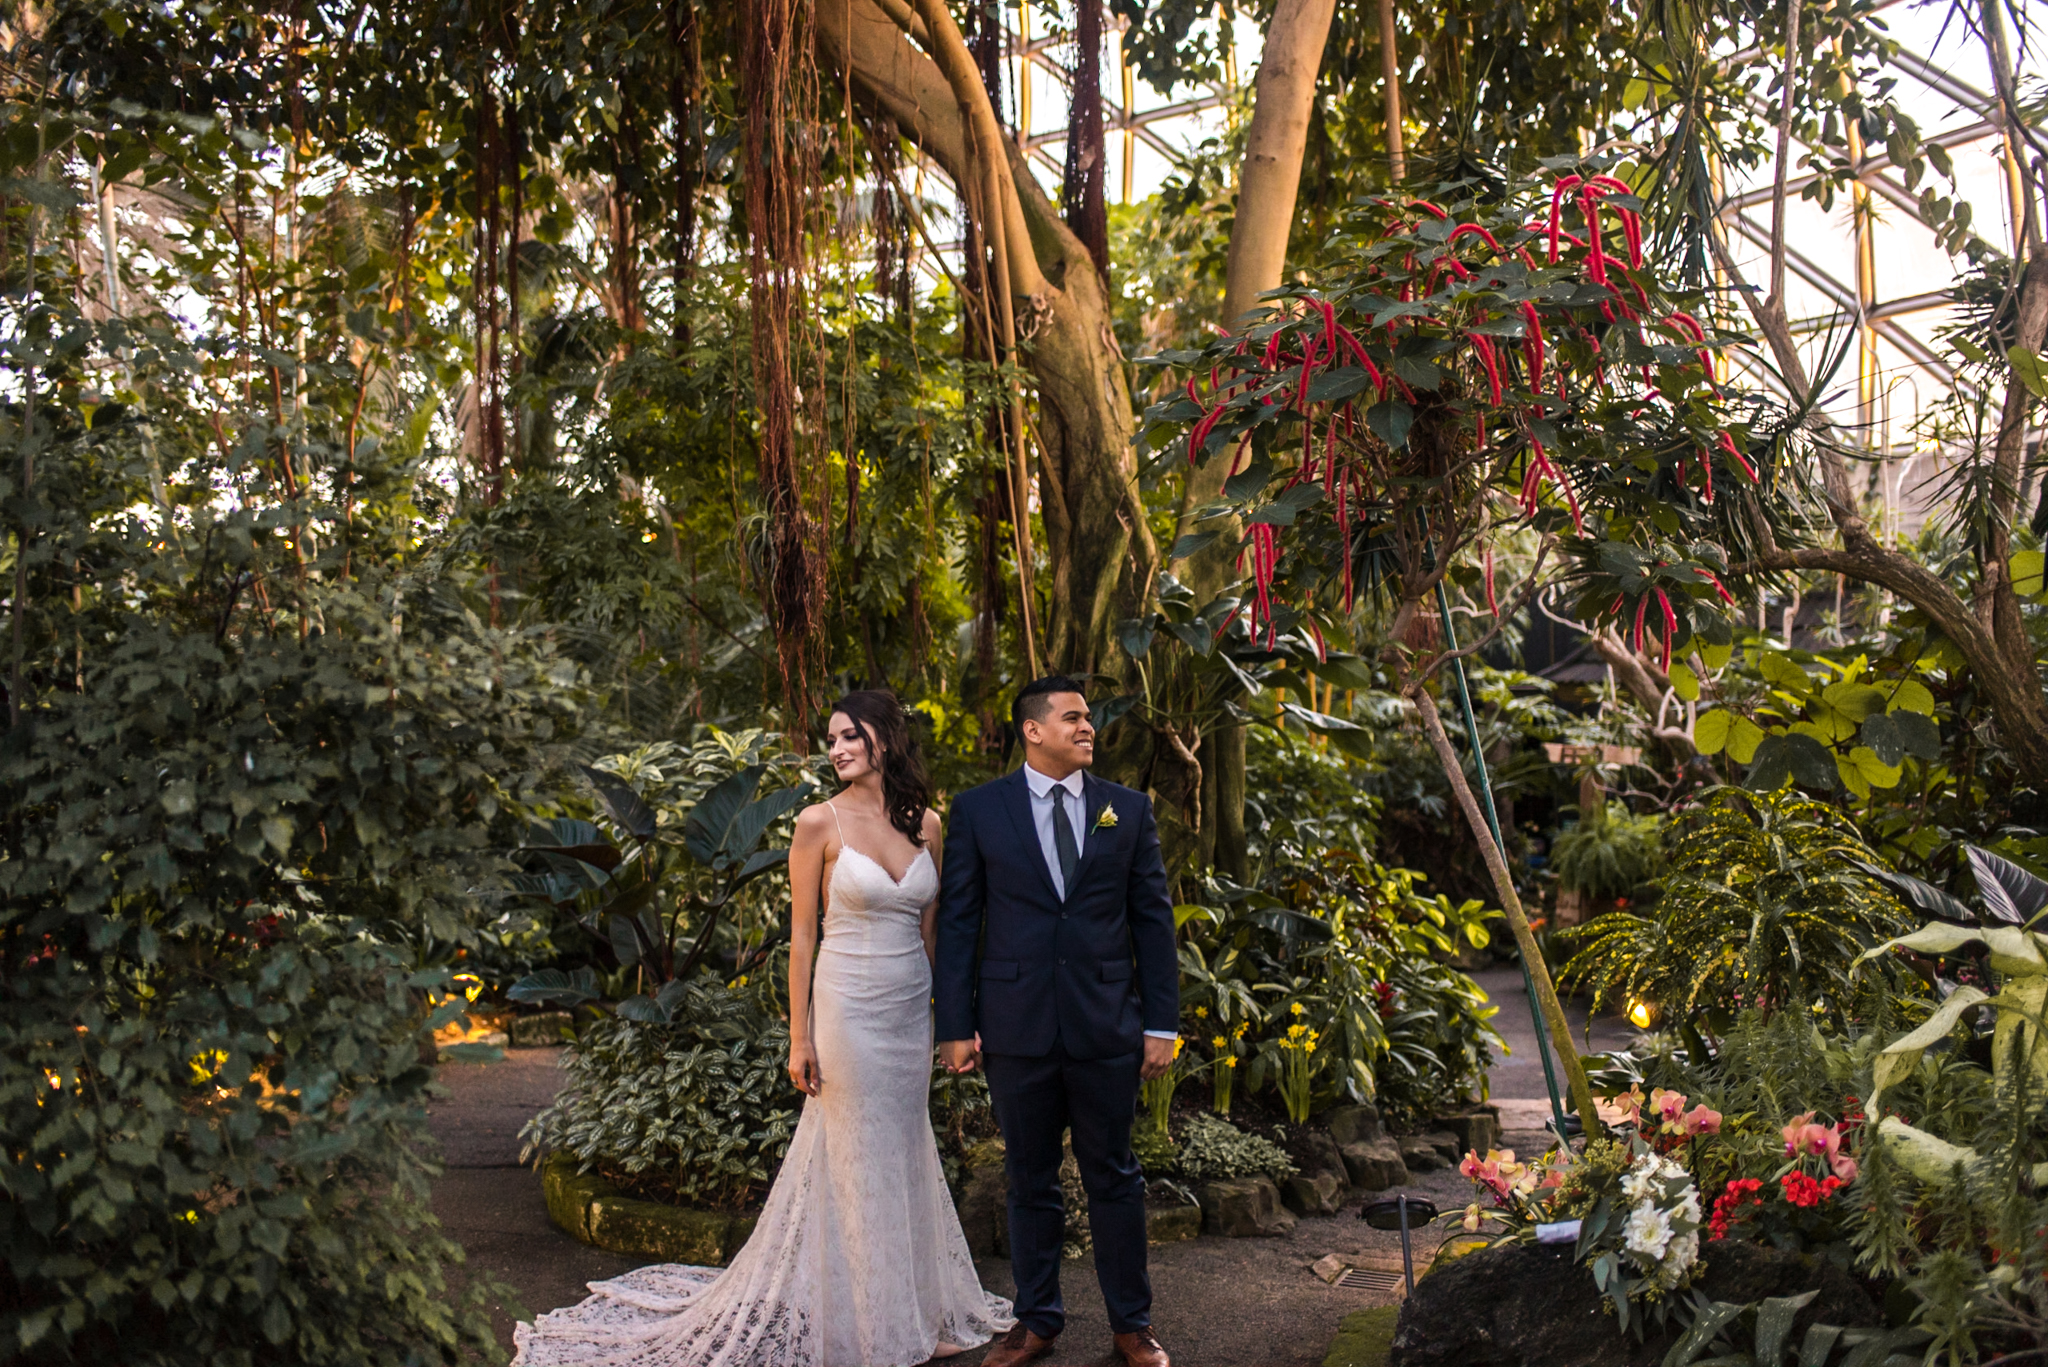 Queen Elizabeth Park Wedding Photographer-59.jpg